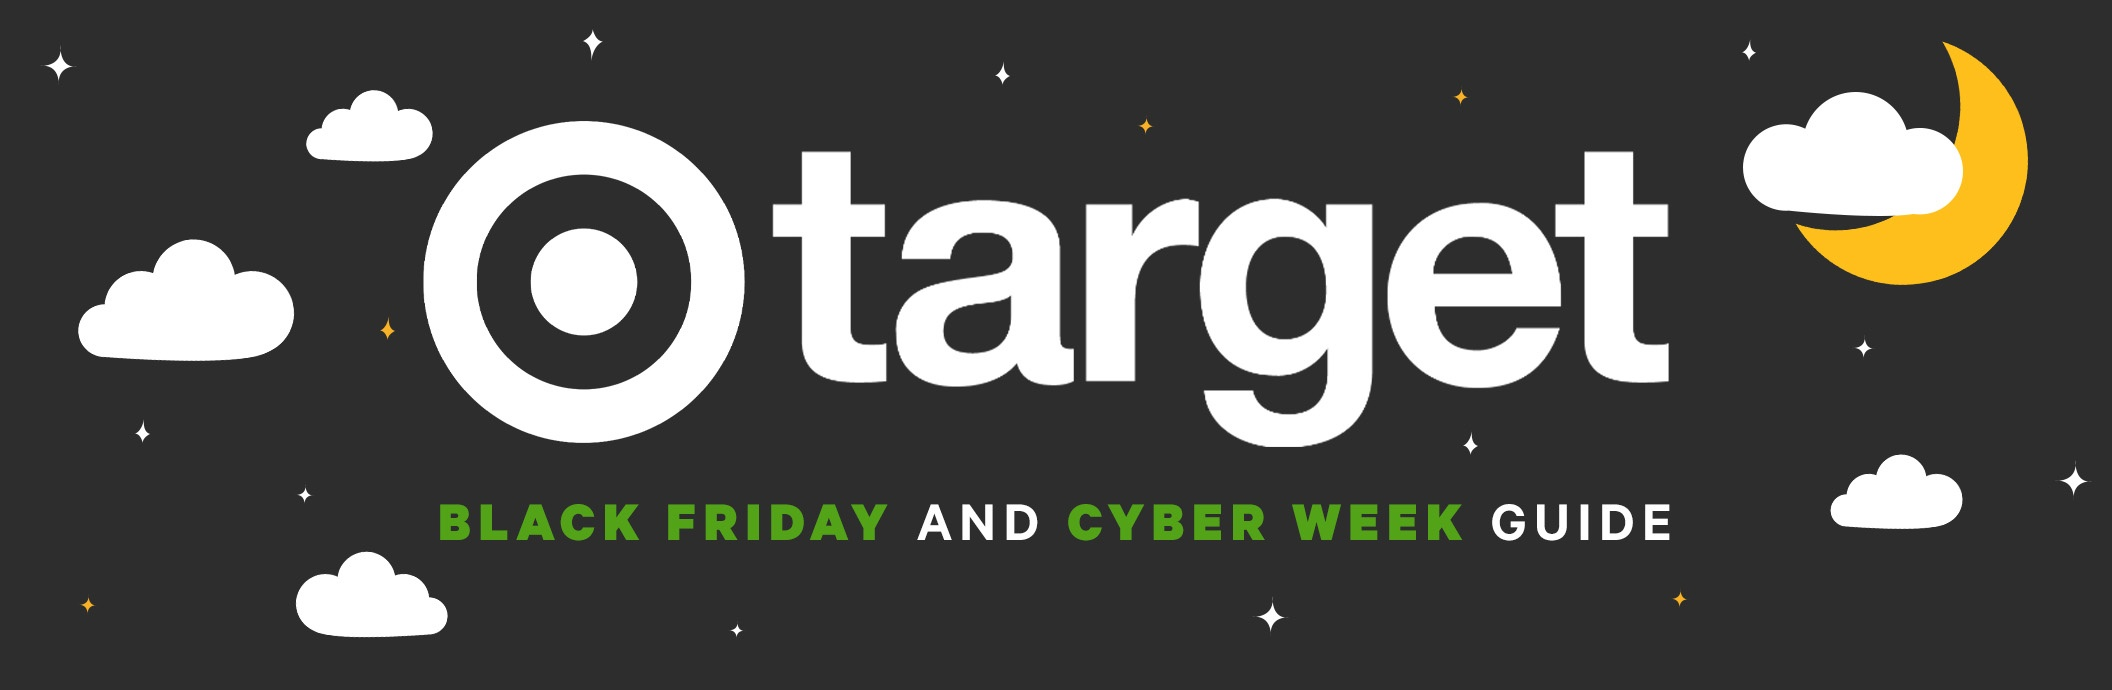 Target Black Friday 2020 Savings